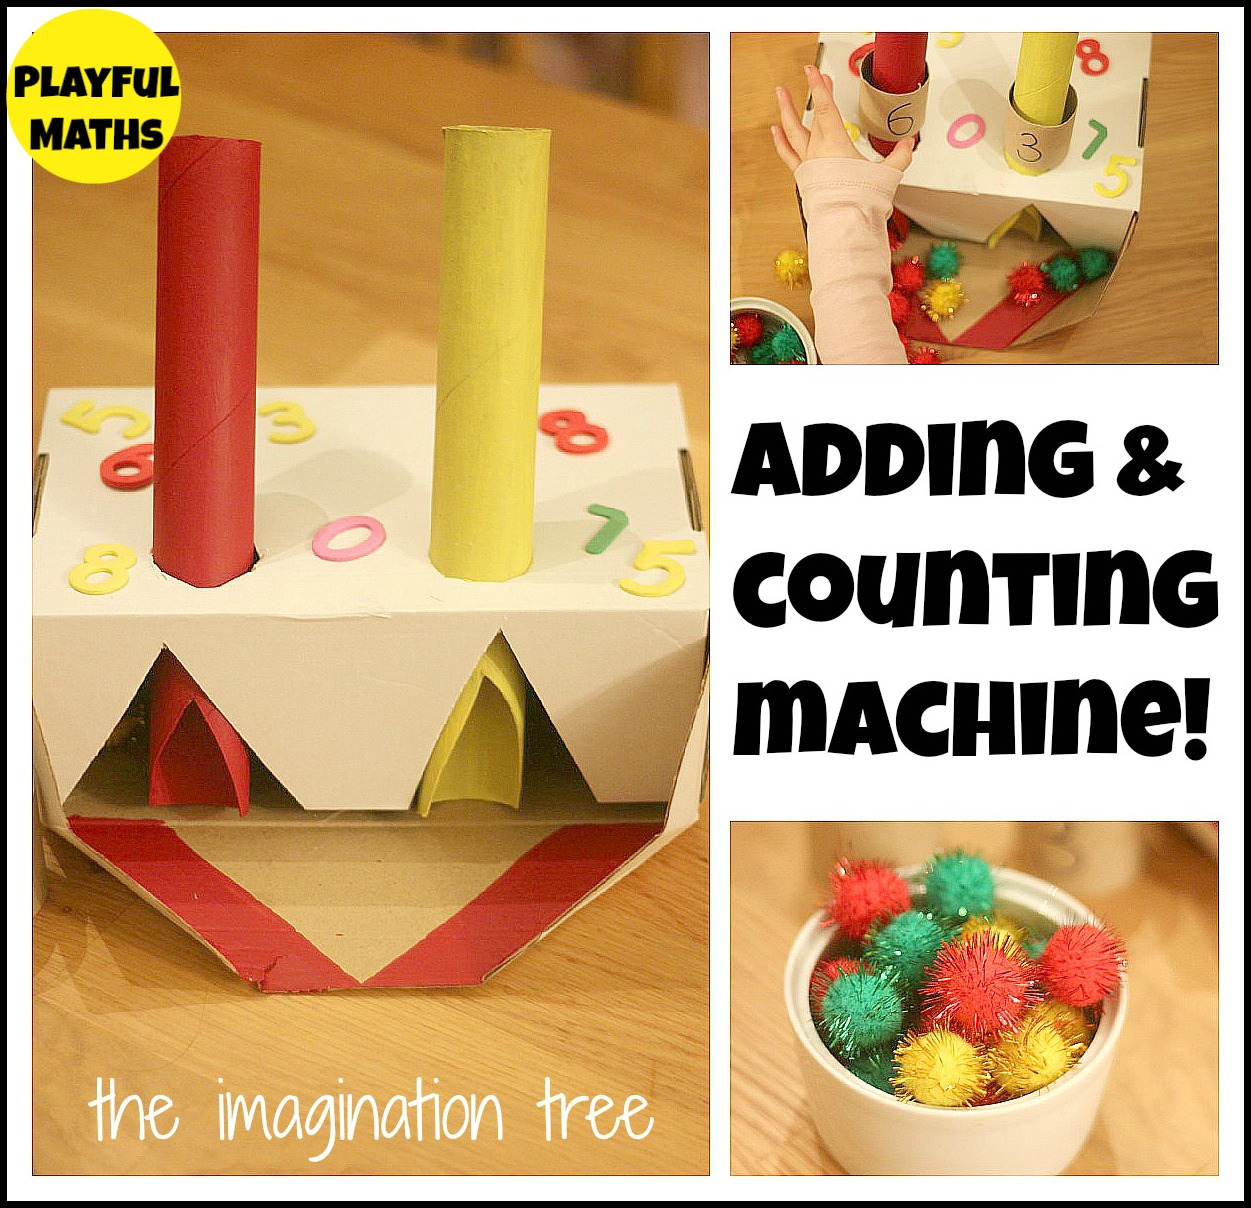 Worksheets Hands On Addition Activities For Kindergarten addition and counting machine maths activity the imagination tree welcome